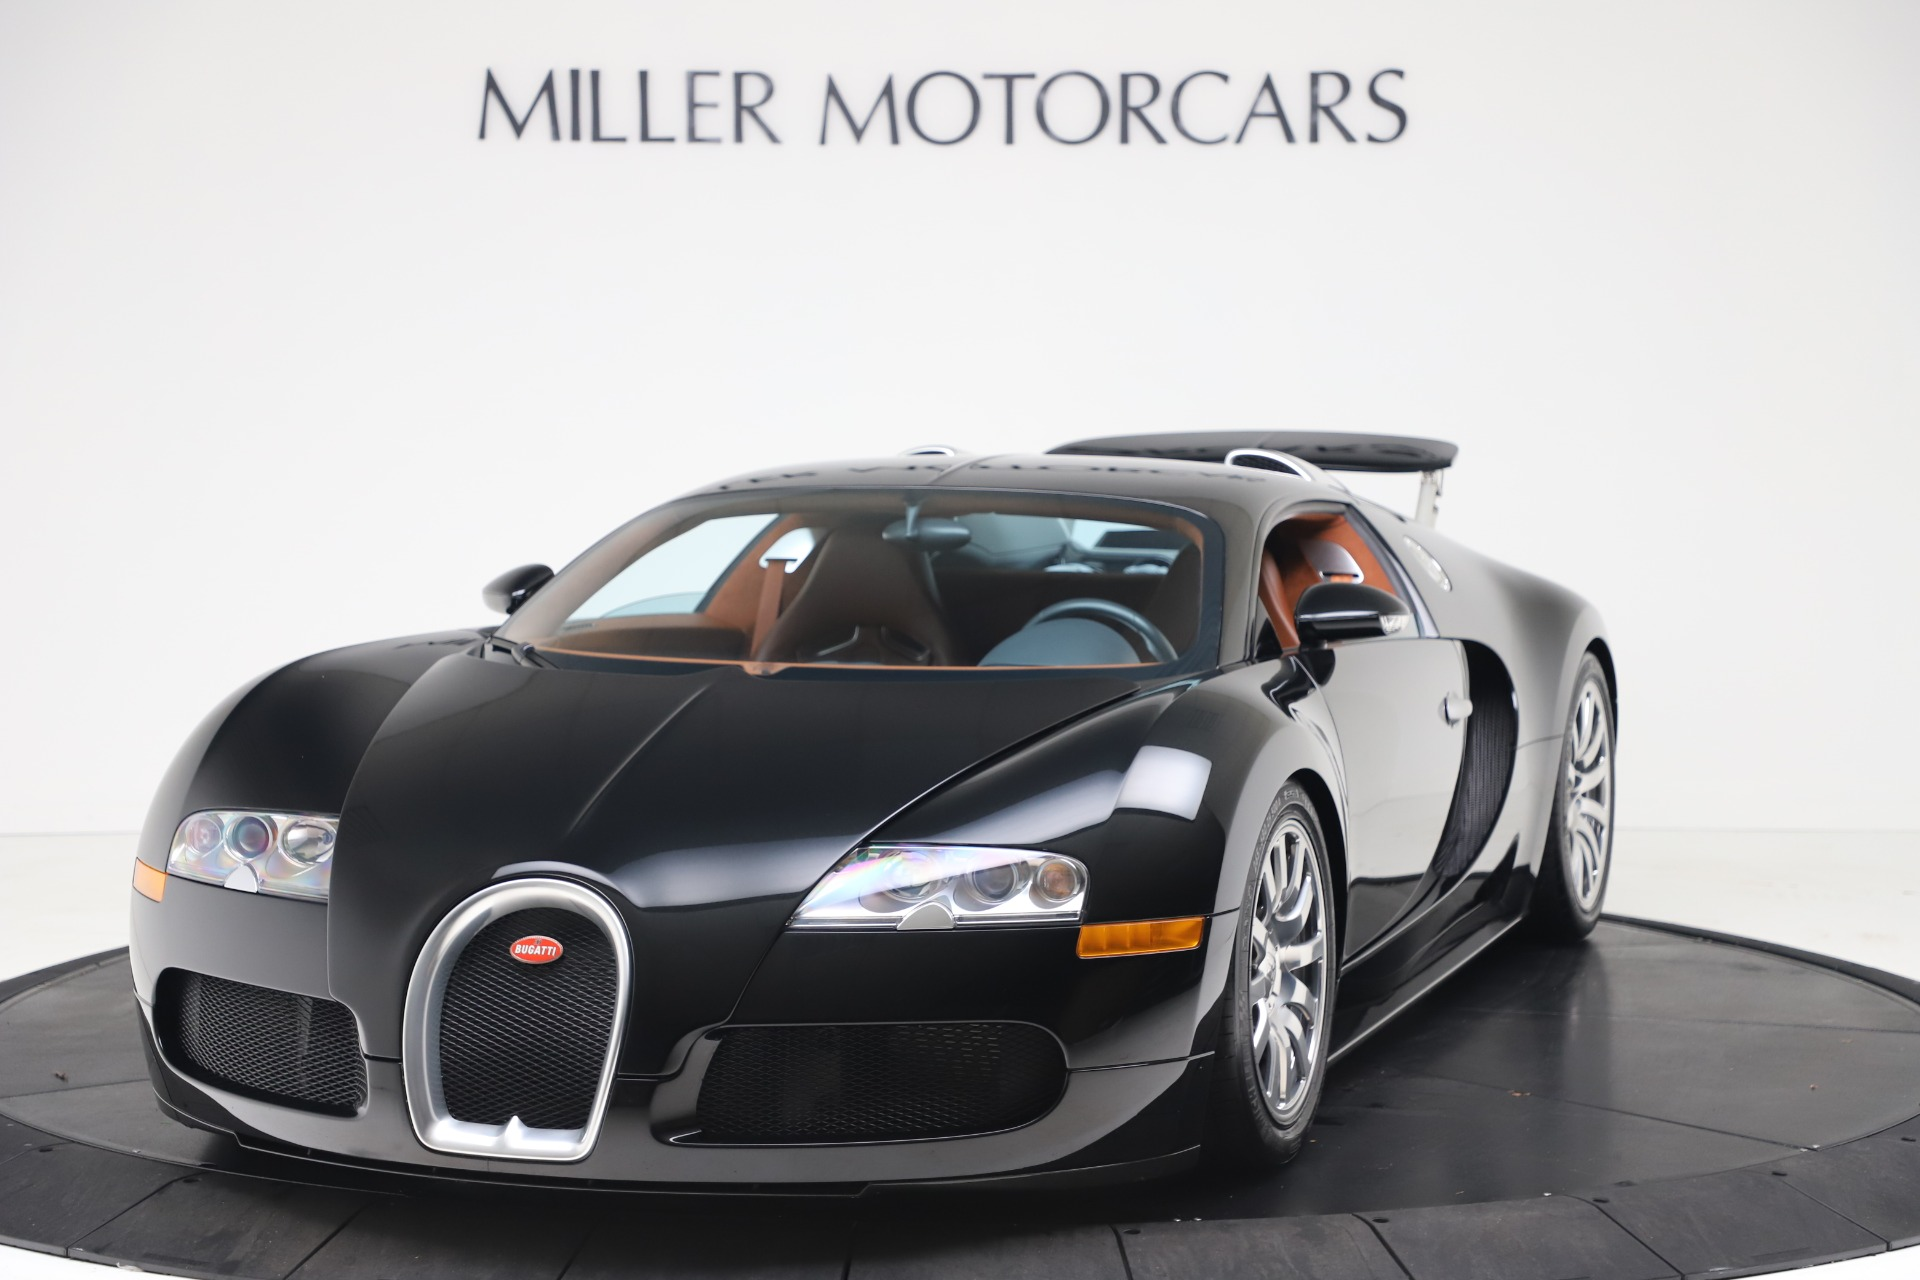 Used 2008 Bugatti Veyron 16.4 for sale Call for price at Bentley Greenwich in Greenwich CT 06830 1